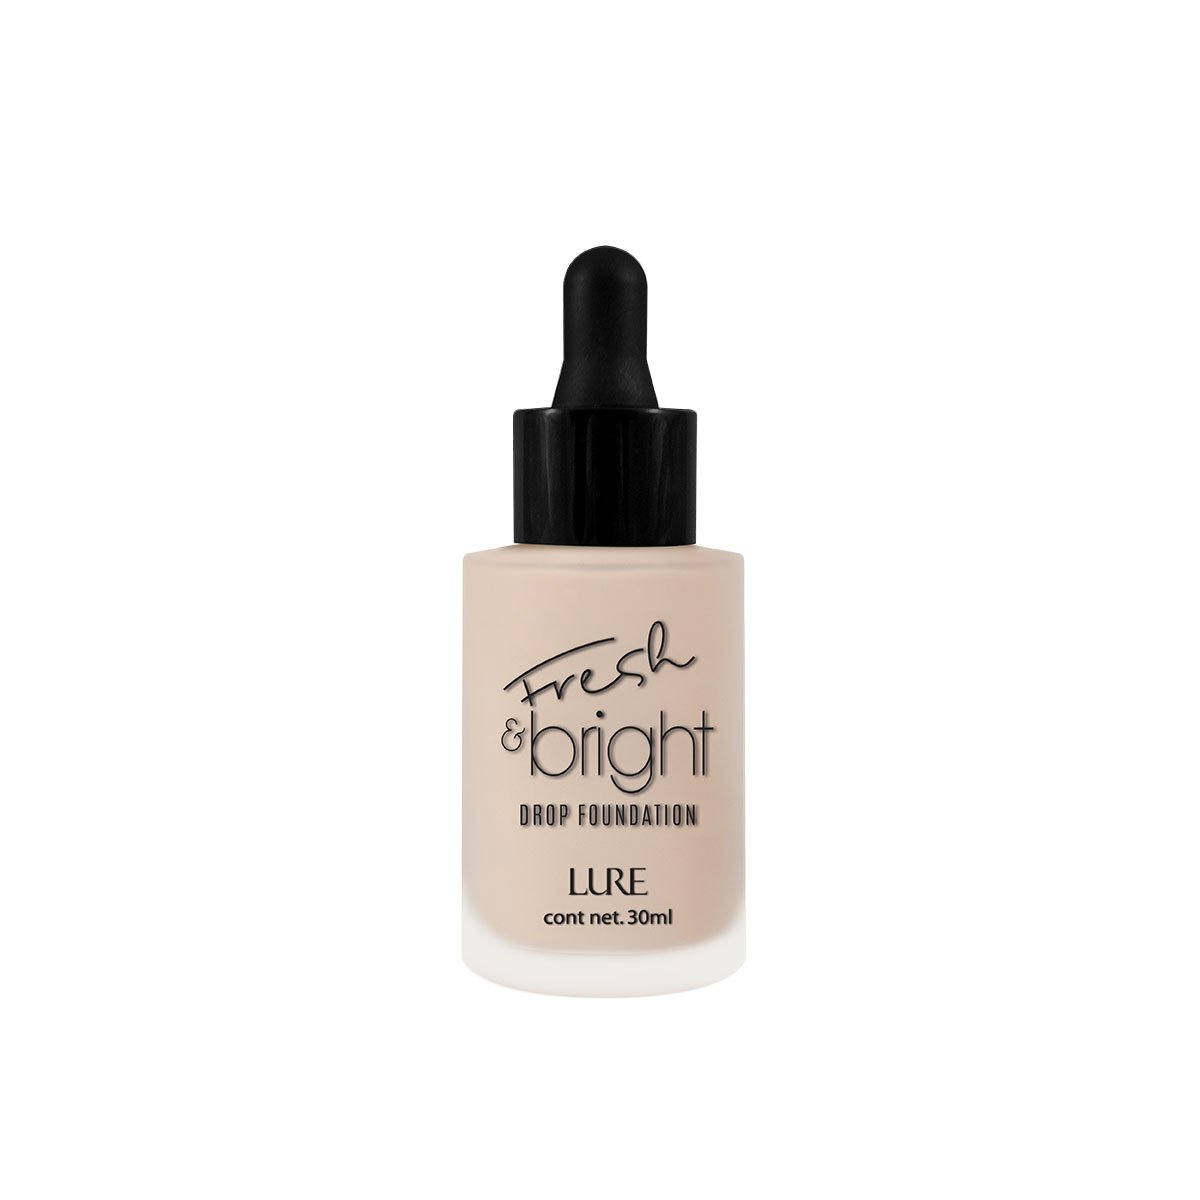 Fresh And Bright Drop Foundation - Lure